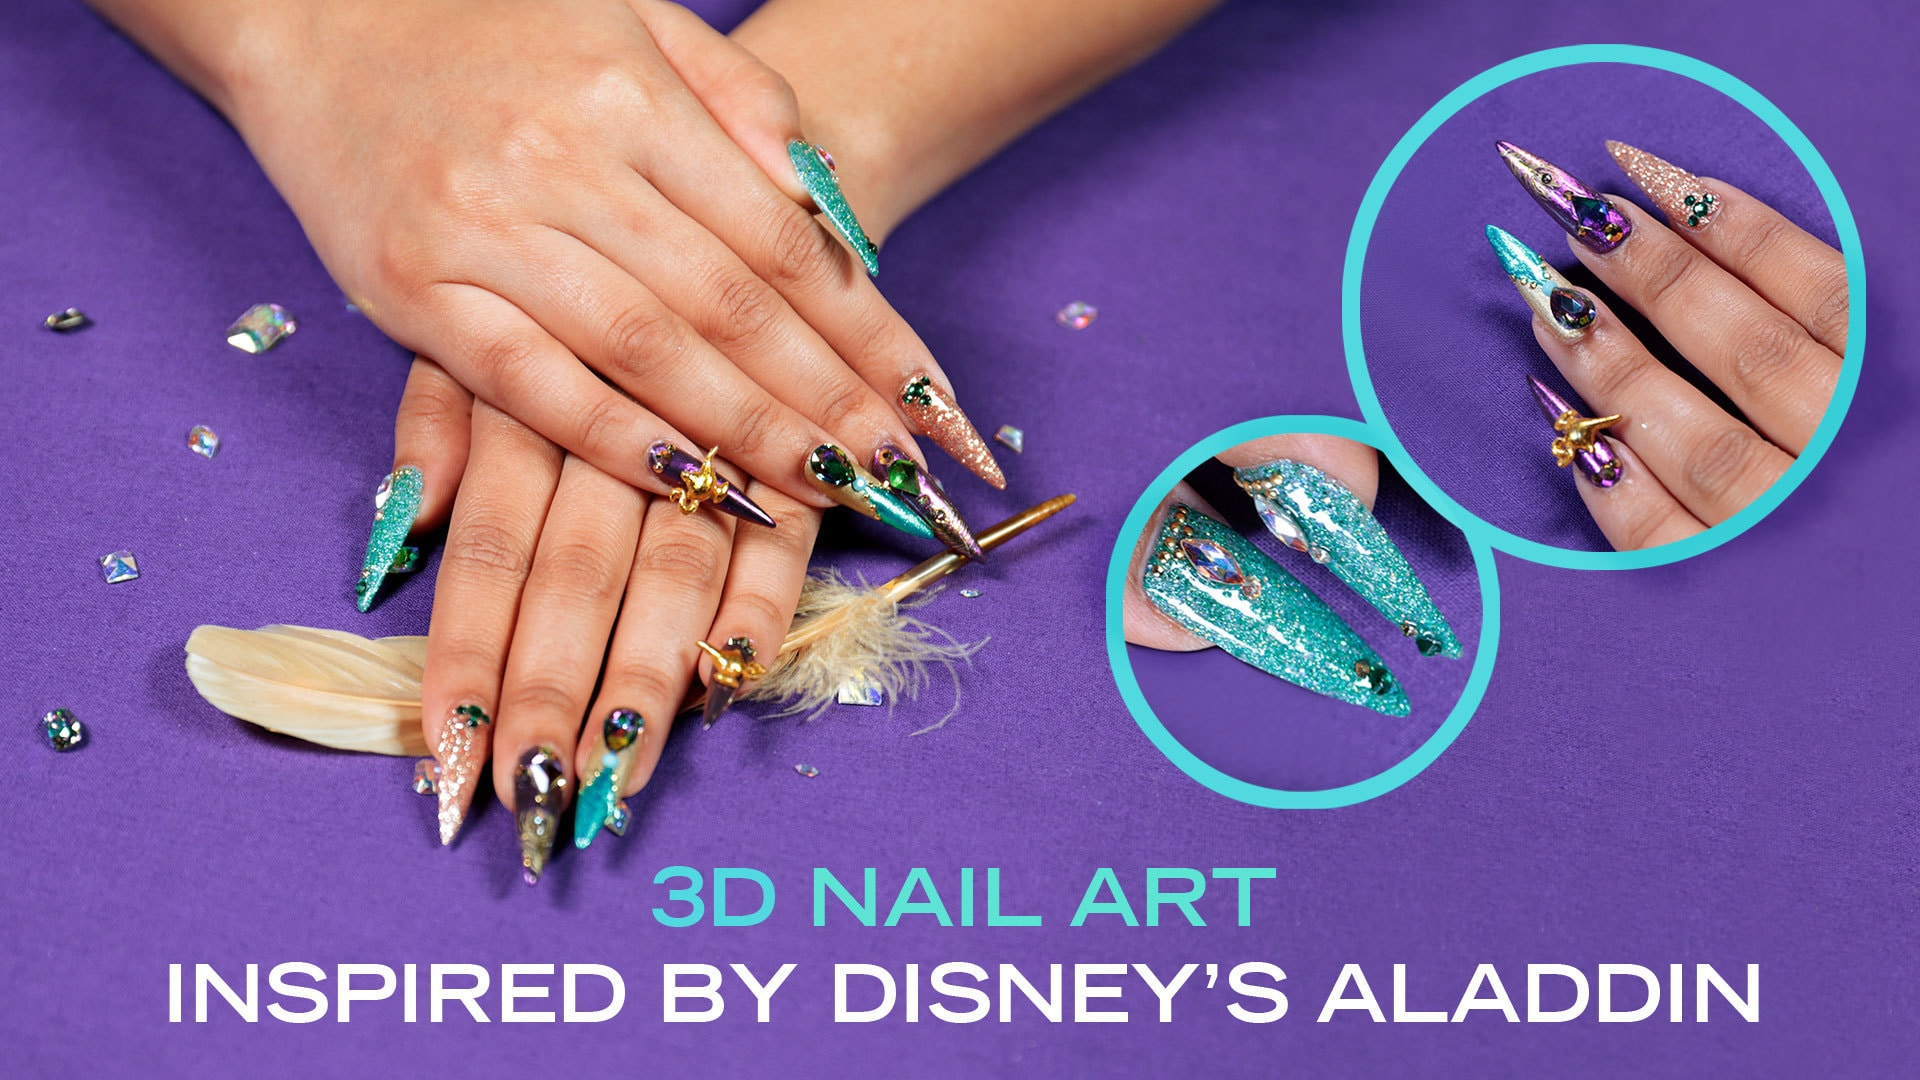 These Beautiful Jewel And Feather Nails Inspired By Disney's Aladdin Are Fit For A Princess